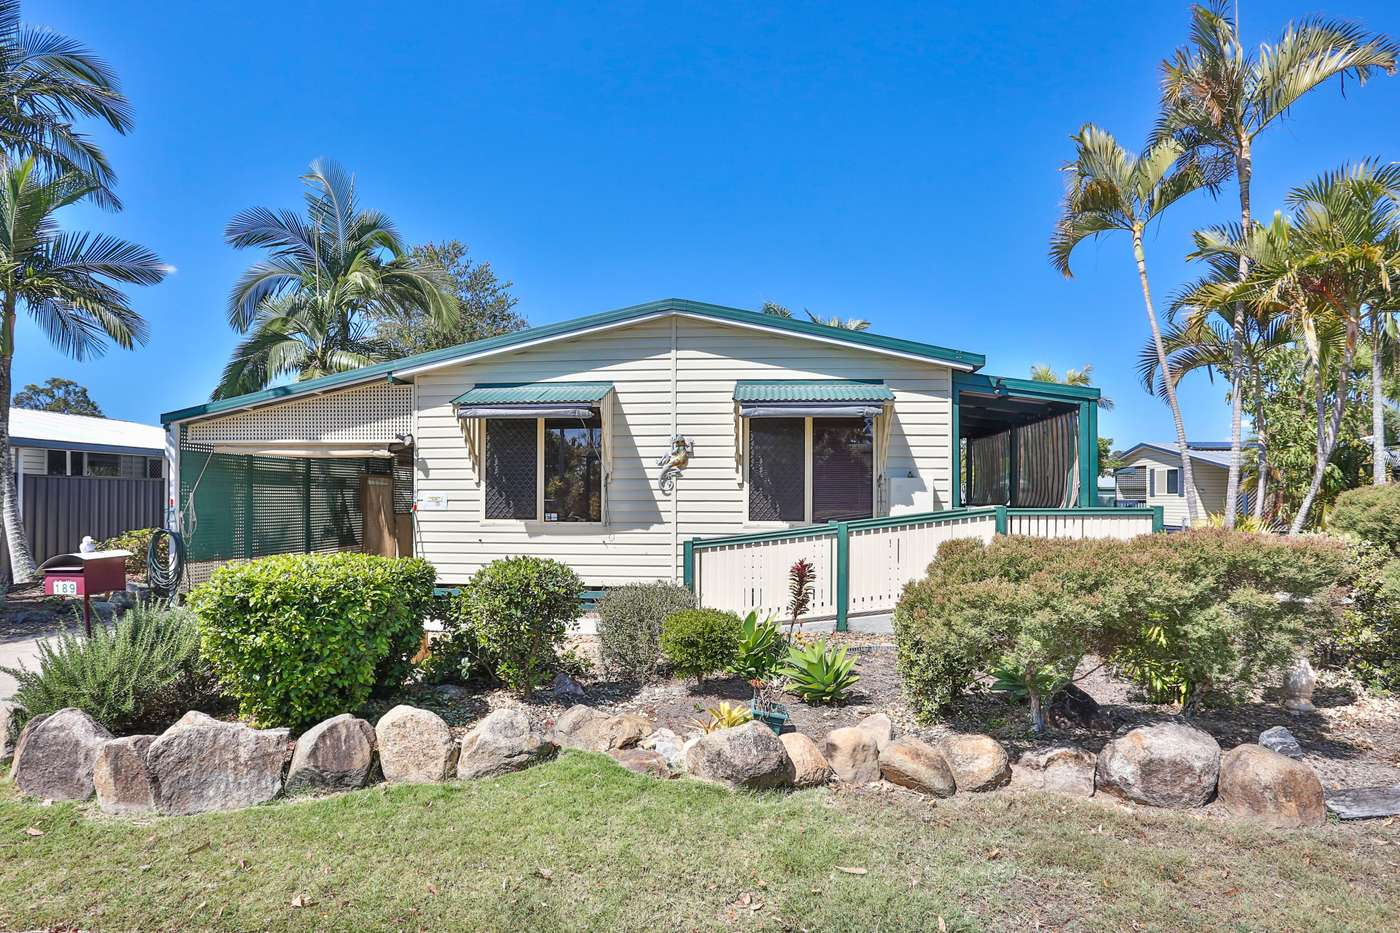 Main view of Homely house listing, 189/758 Blunder Road, Durack, QLD 4077